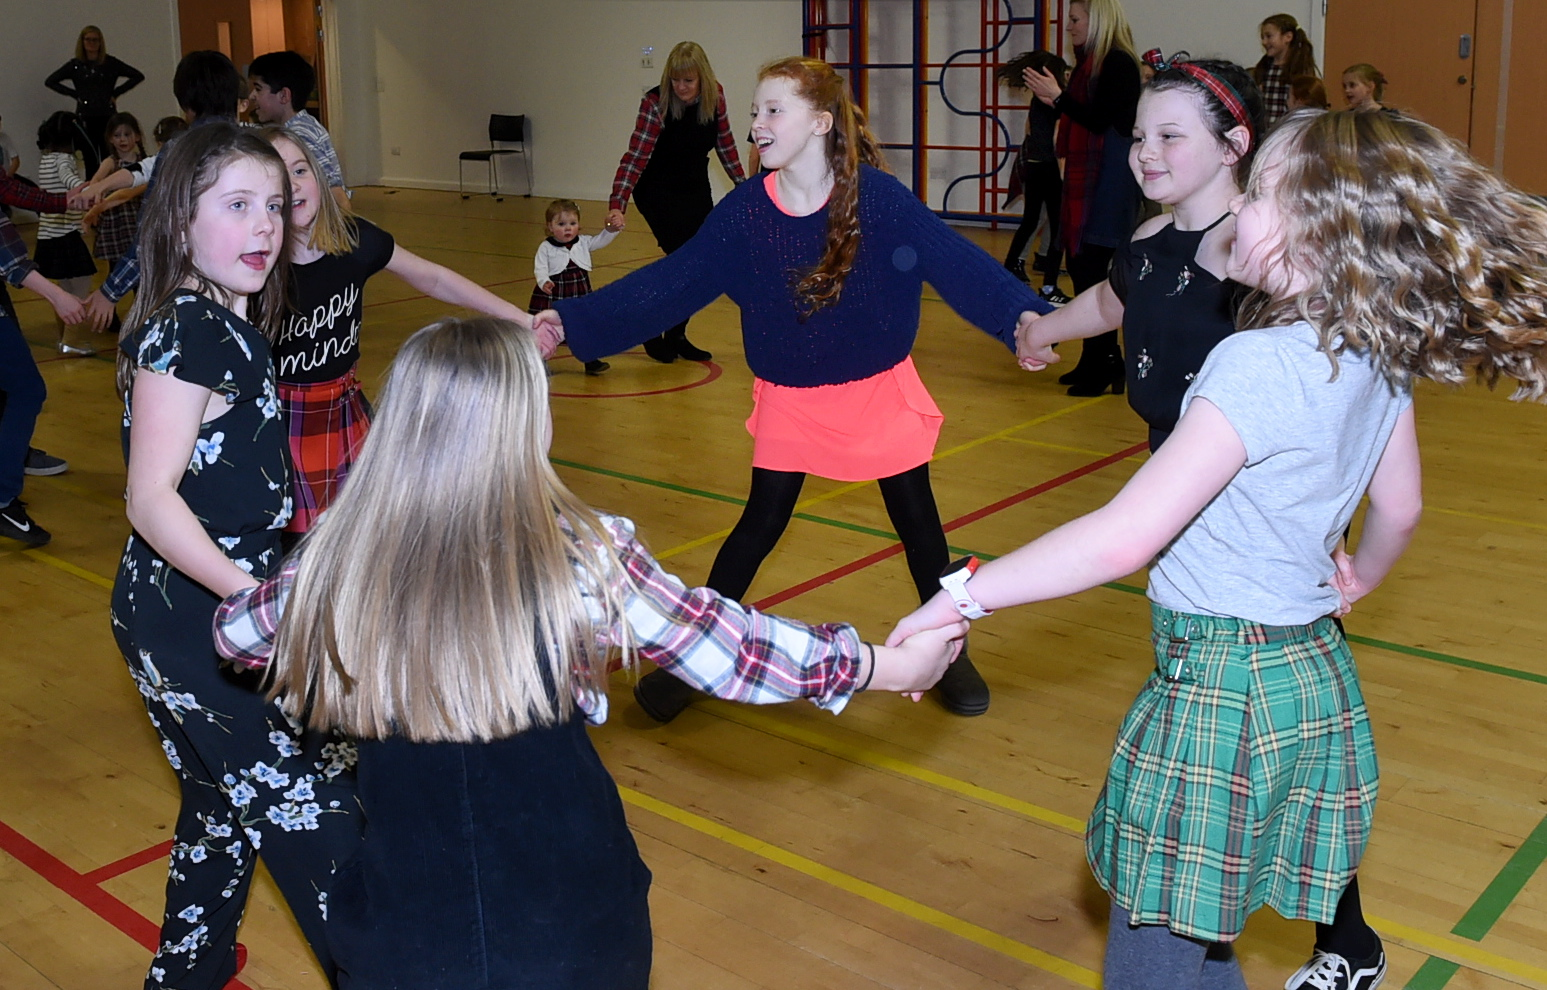 A family ceilidh at Mile End School